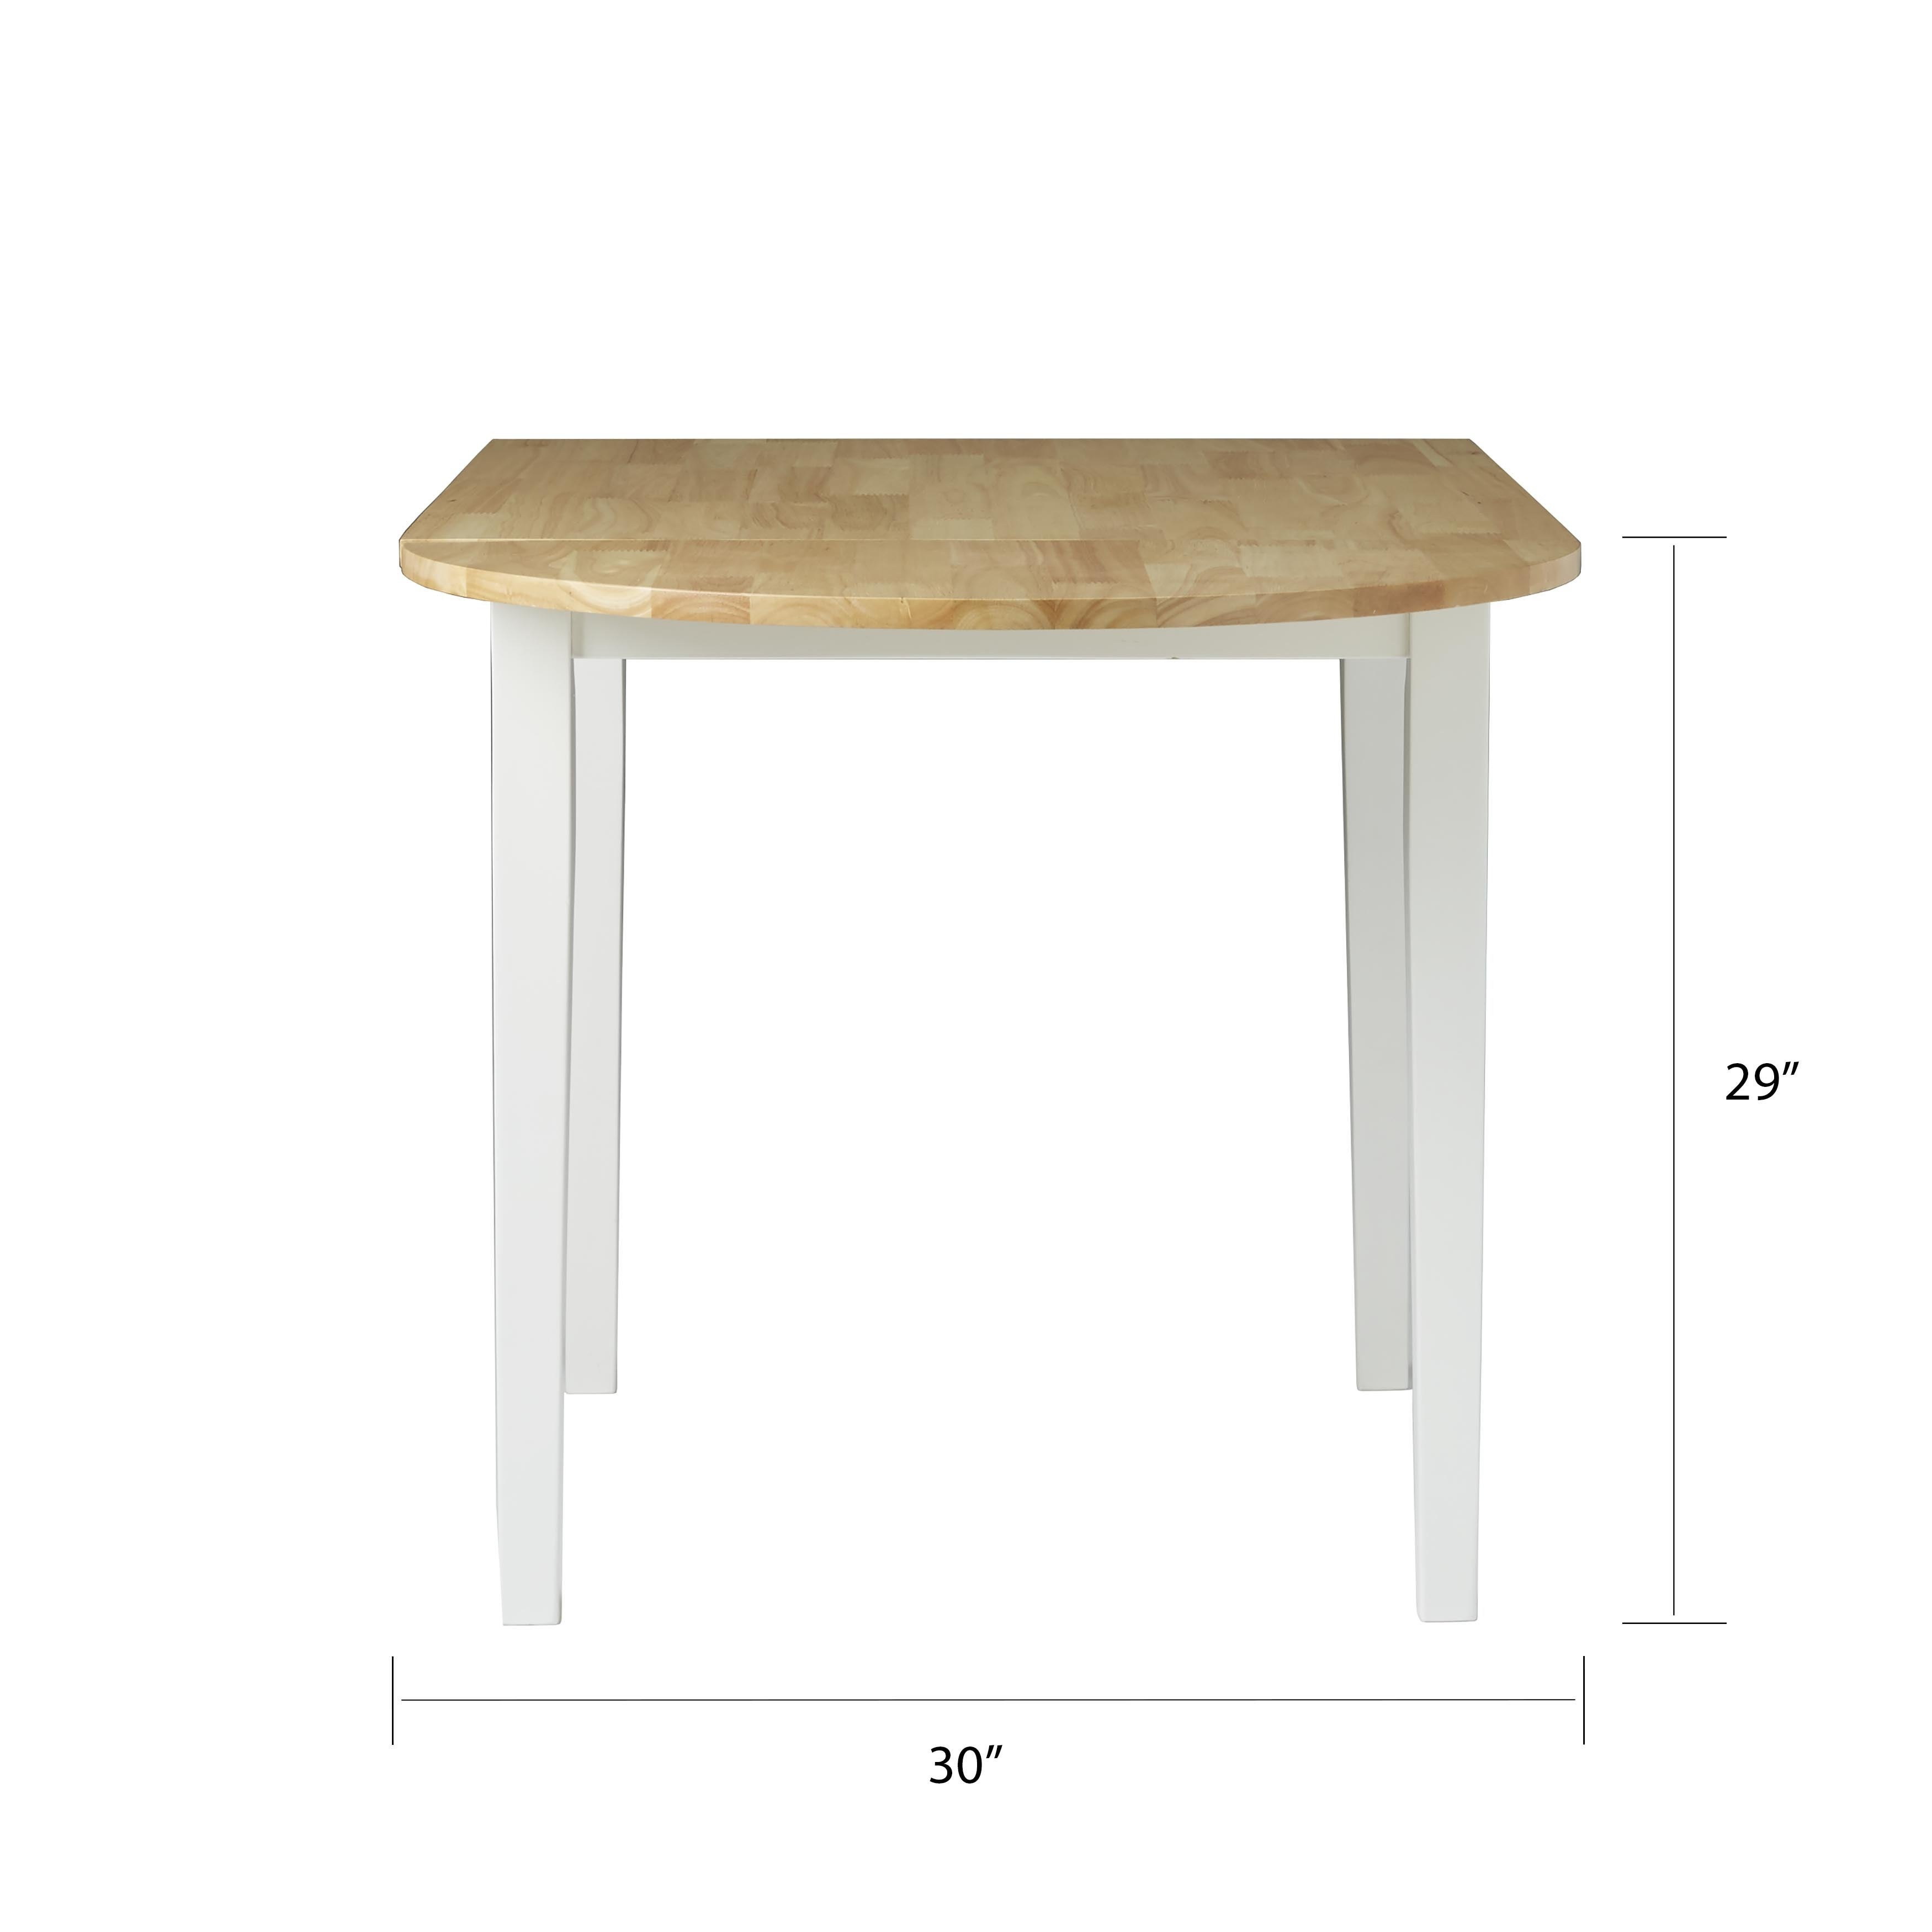 Simple Living Country Cottage Dining Table   Natural, White   Free Shipping  Today   Overstock   10703454